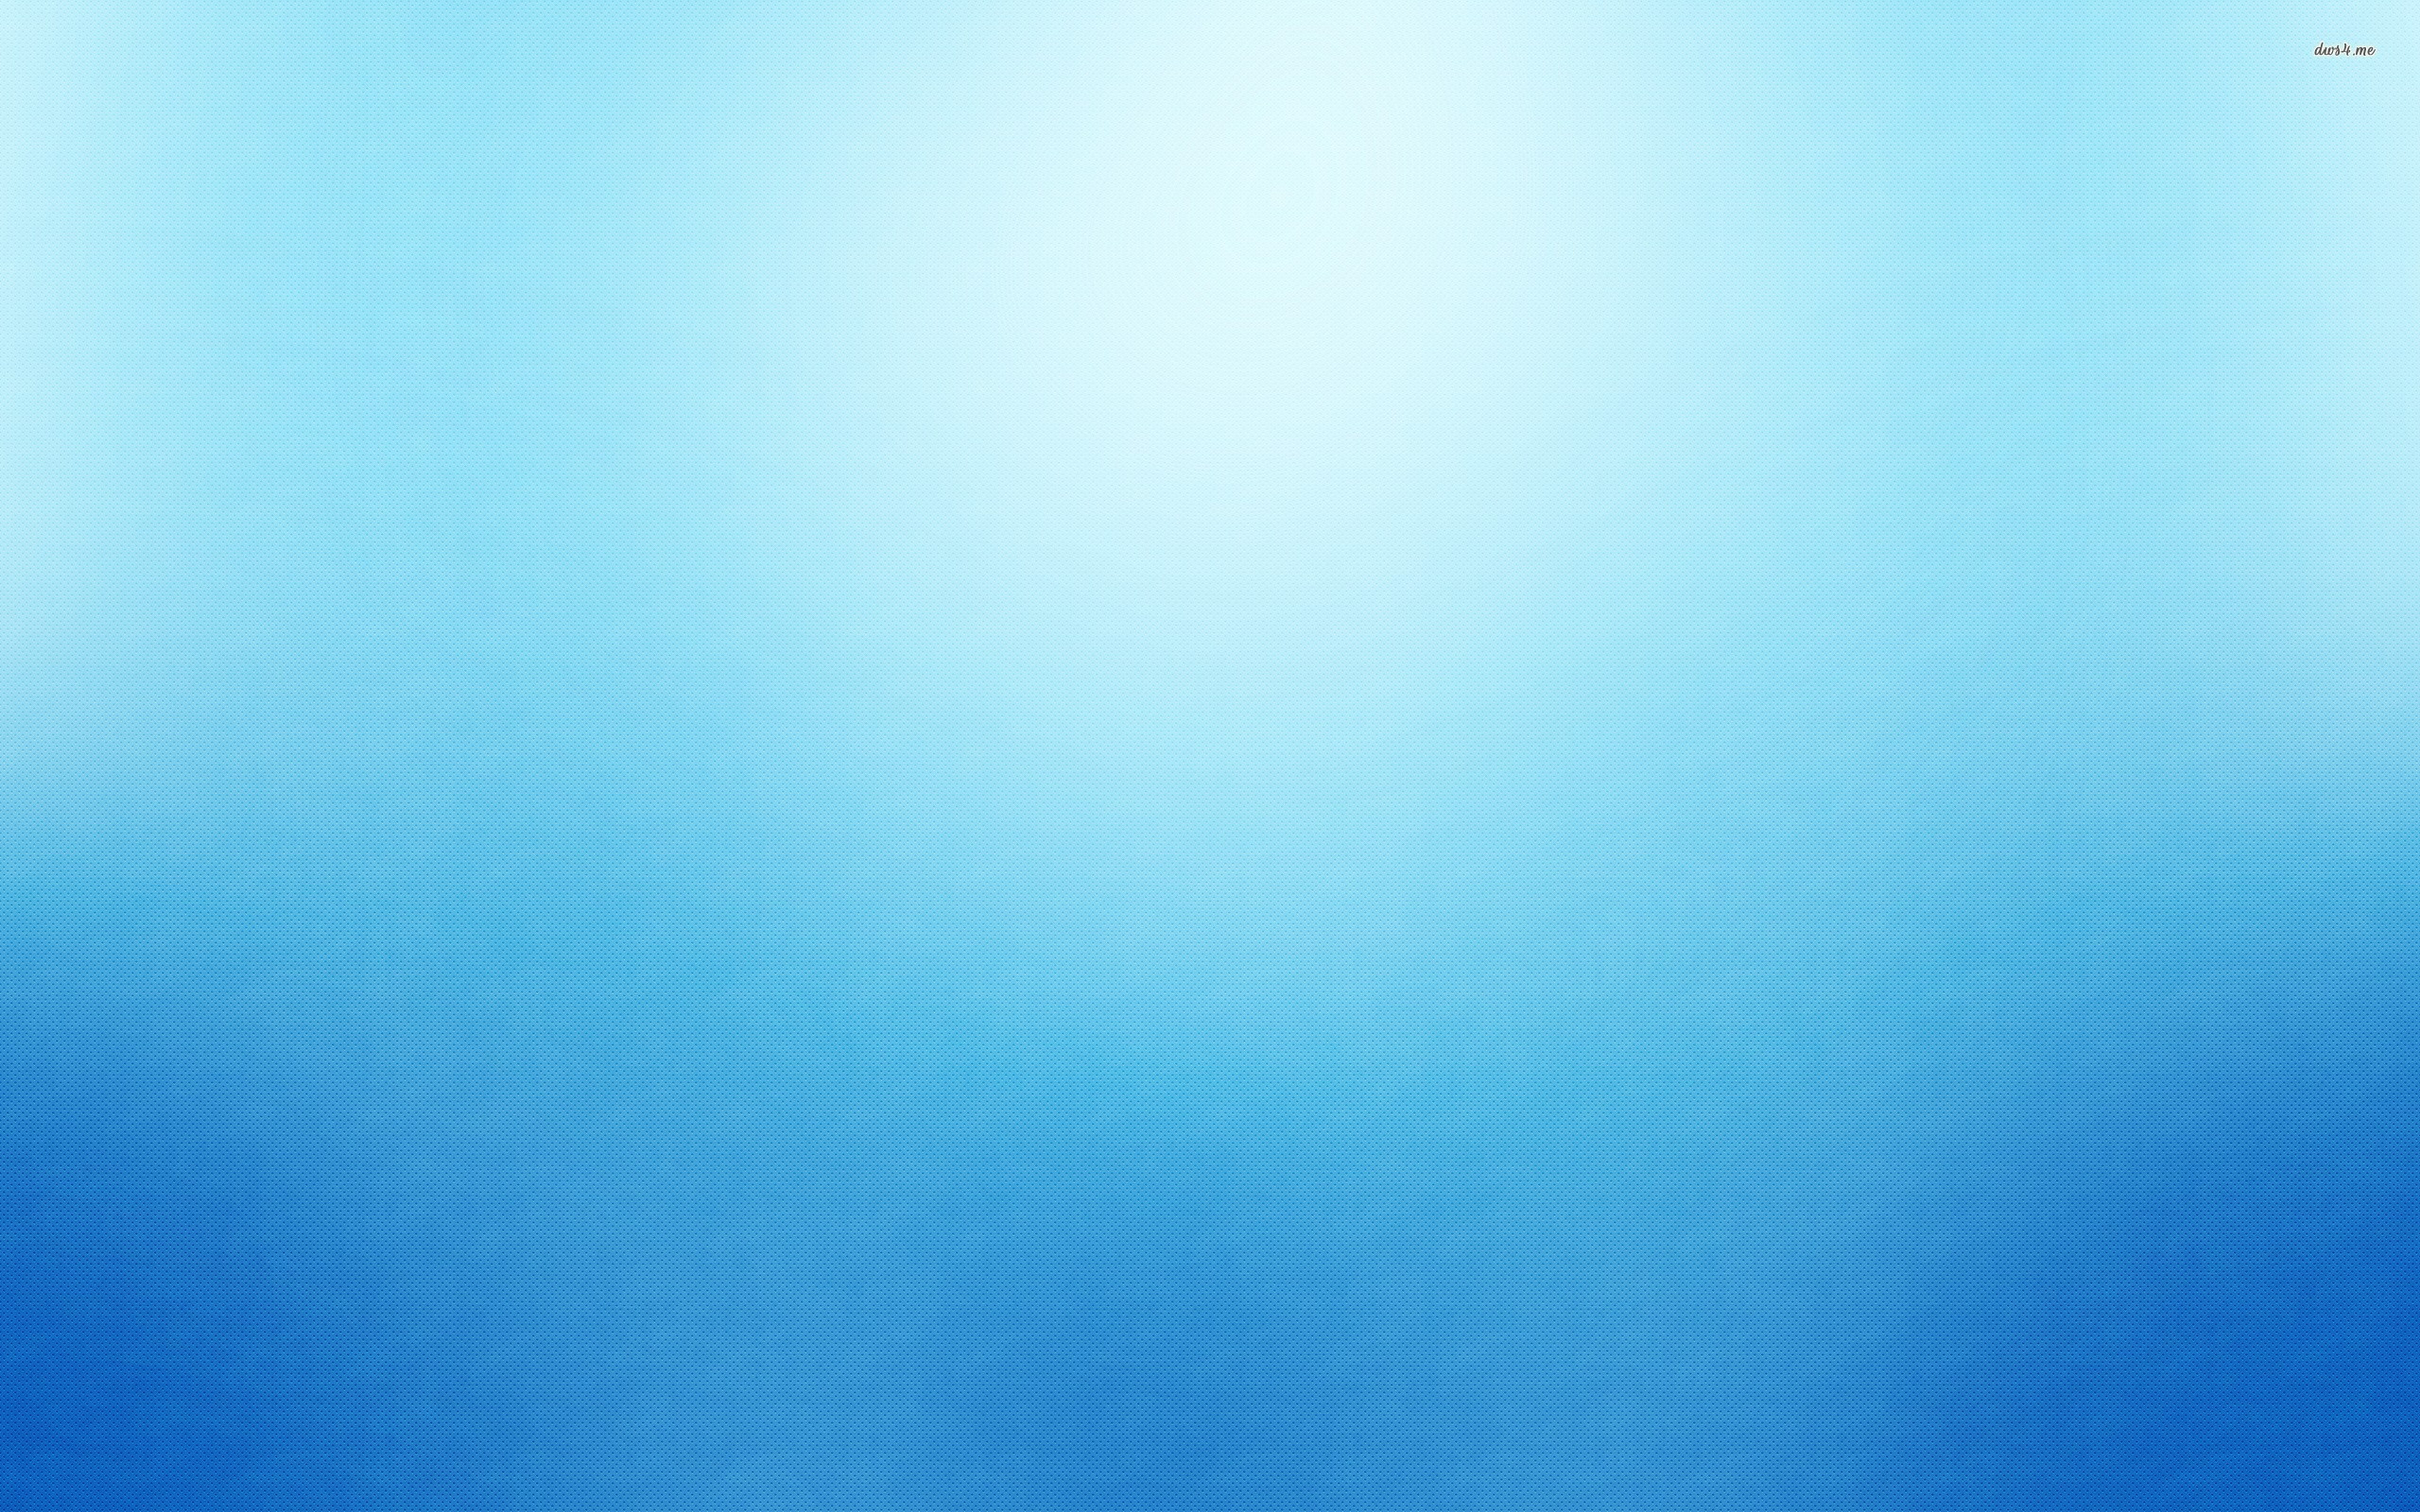 blue simple background 0